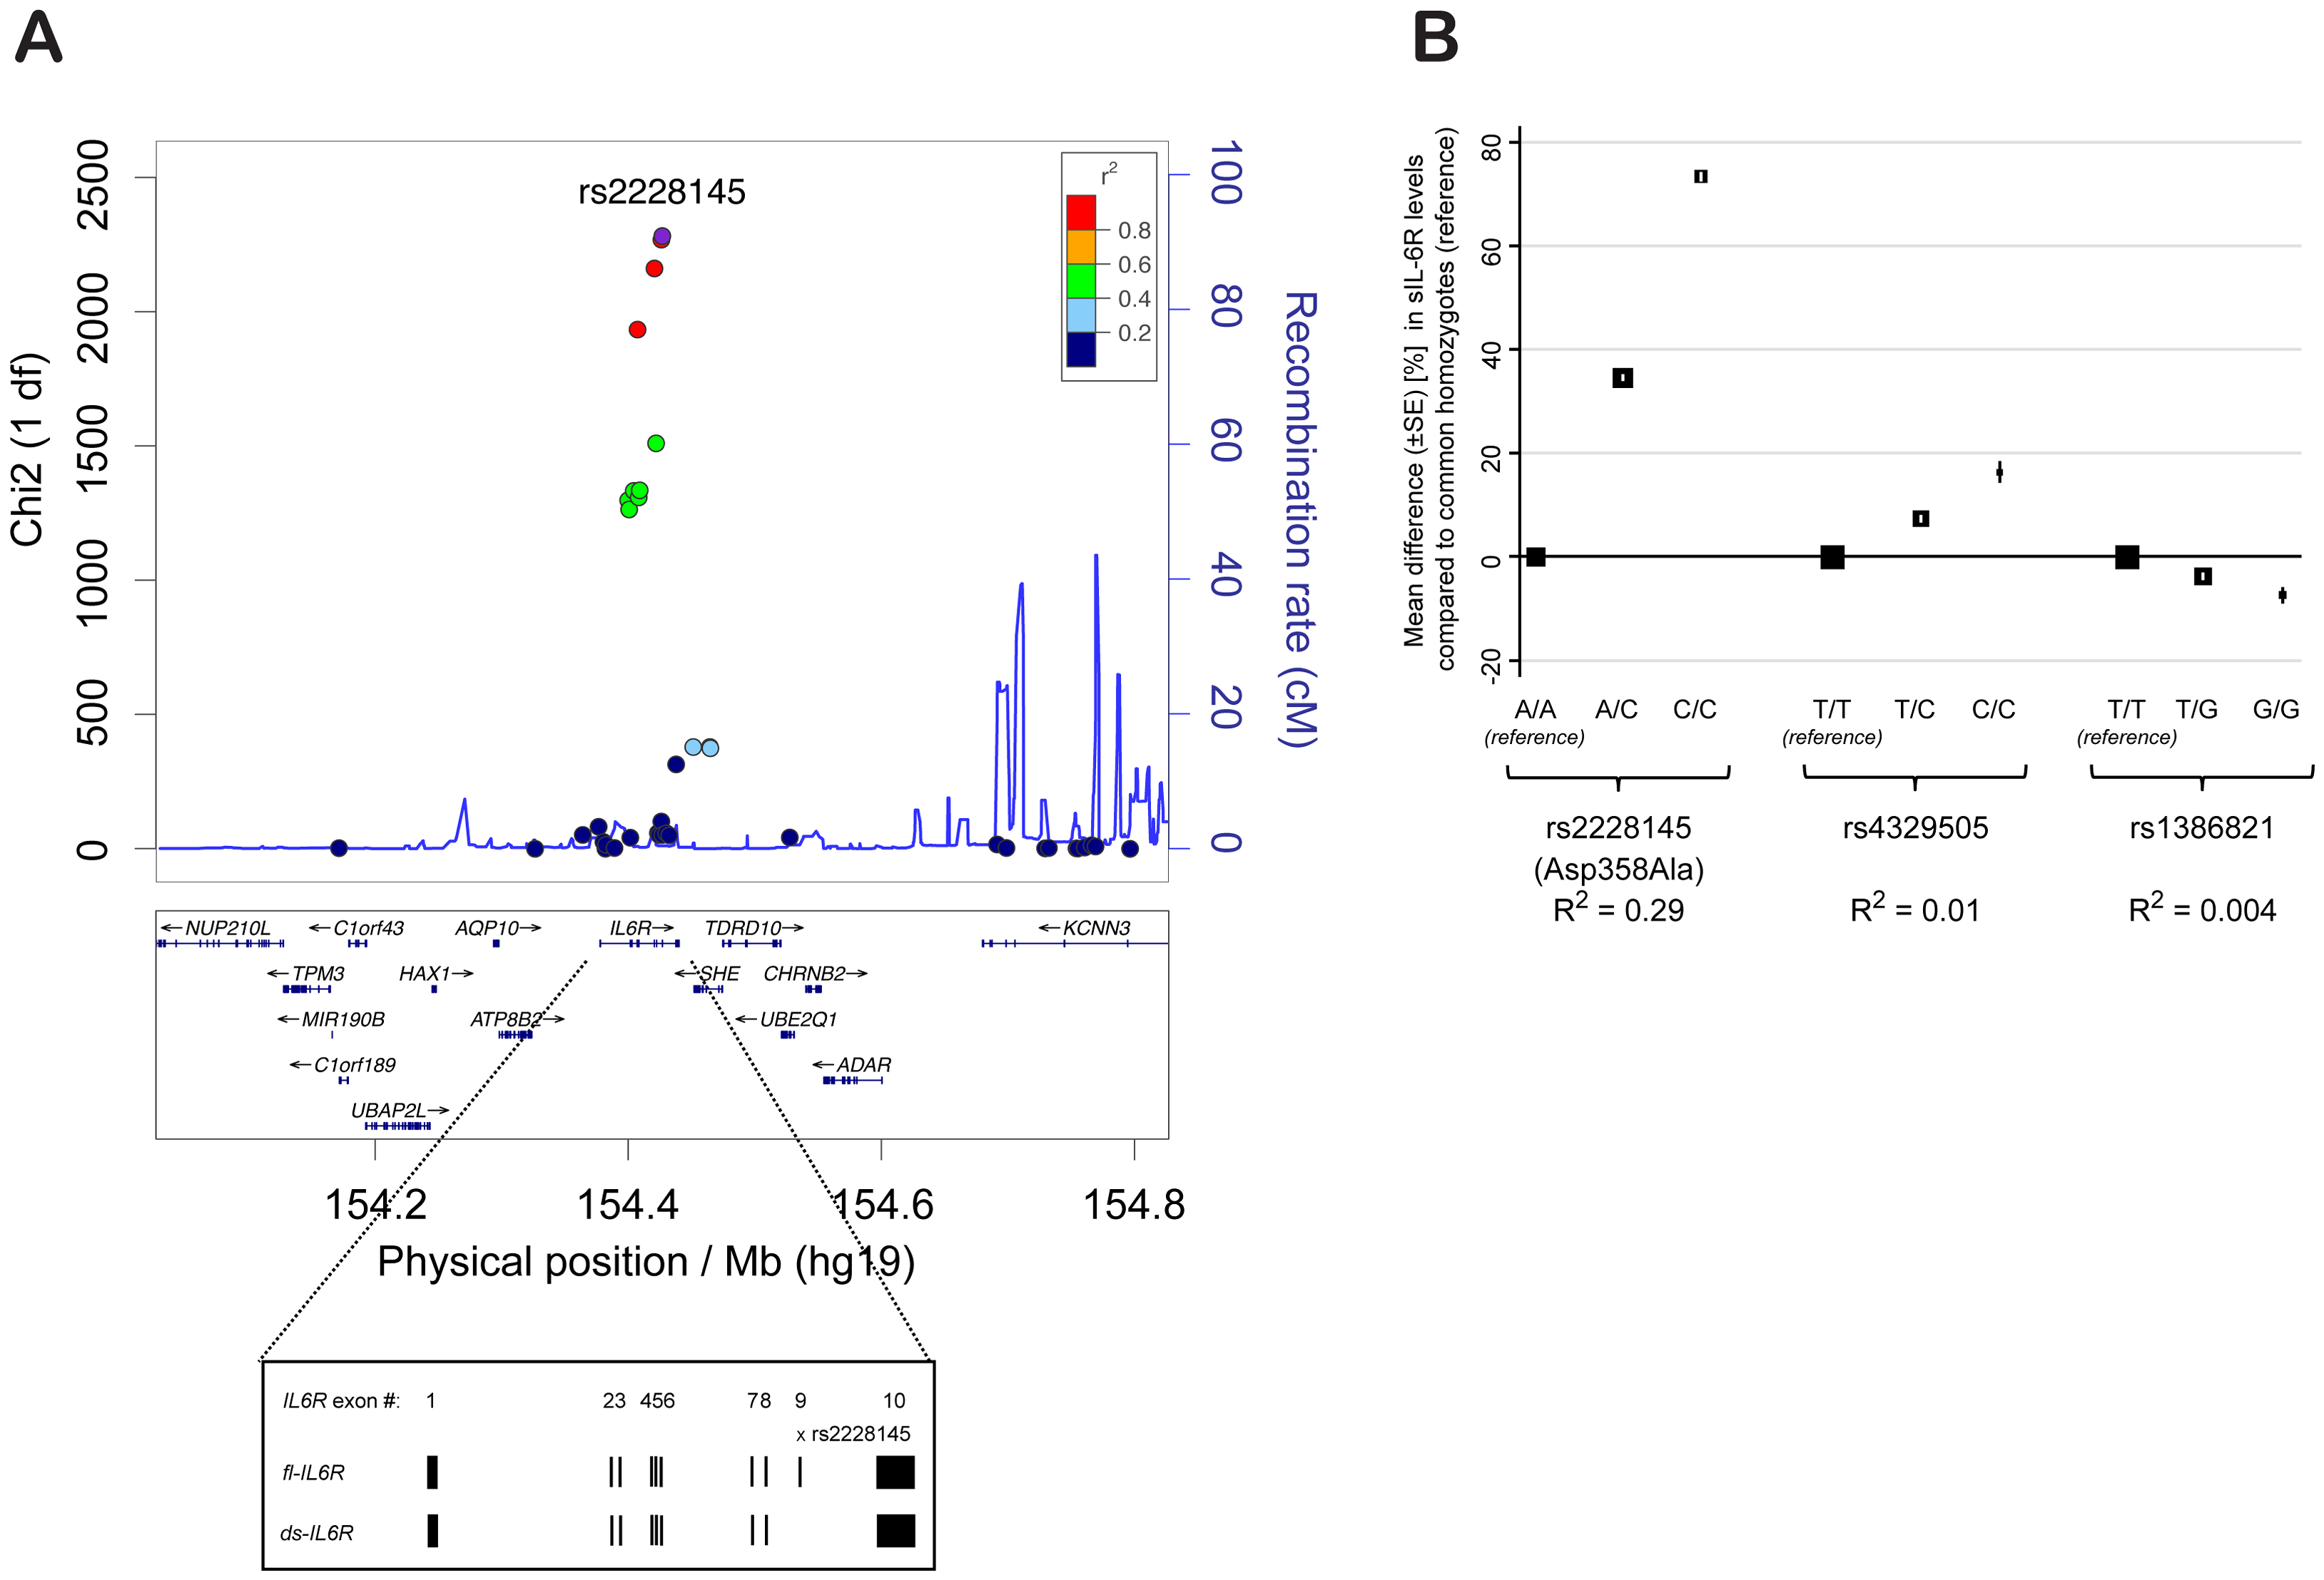 rs2228145 is the major determinant of circulating sIL-6R levels at the <i>IL6R</i> locus.